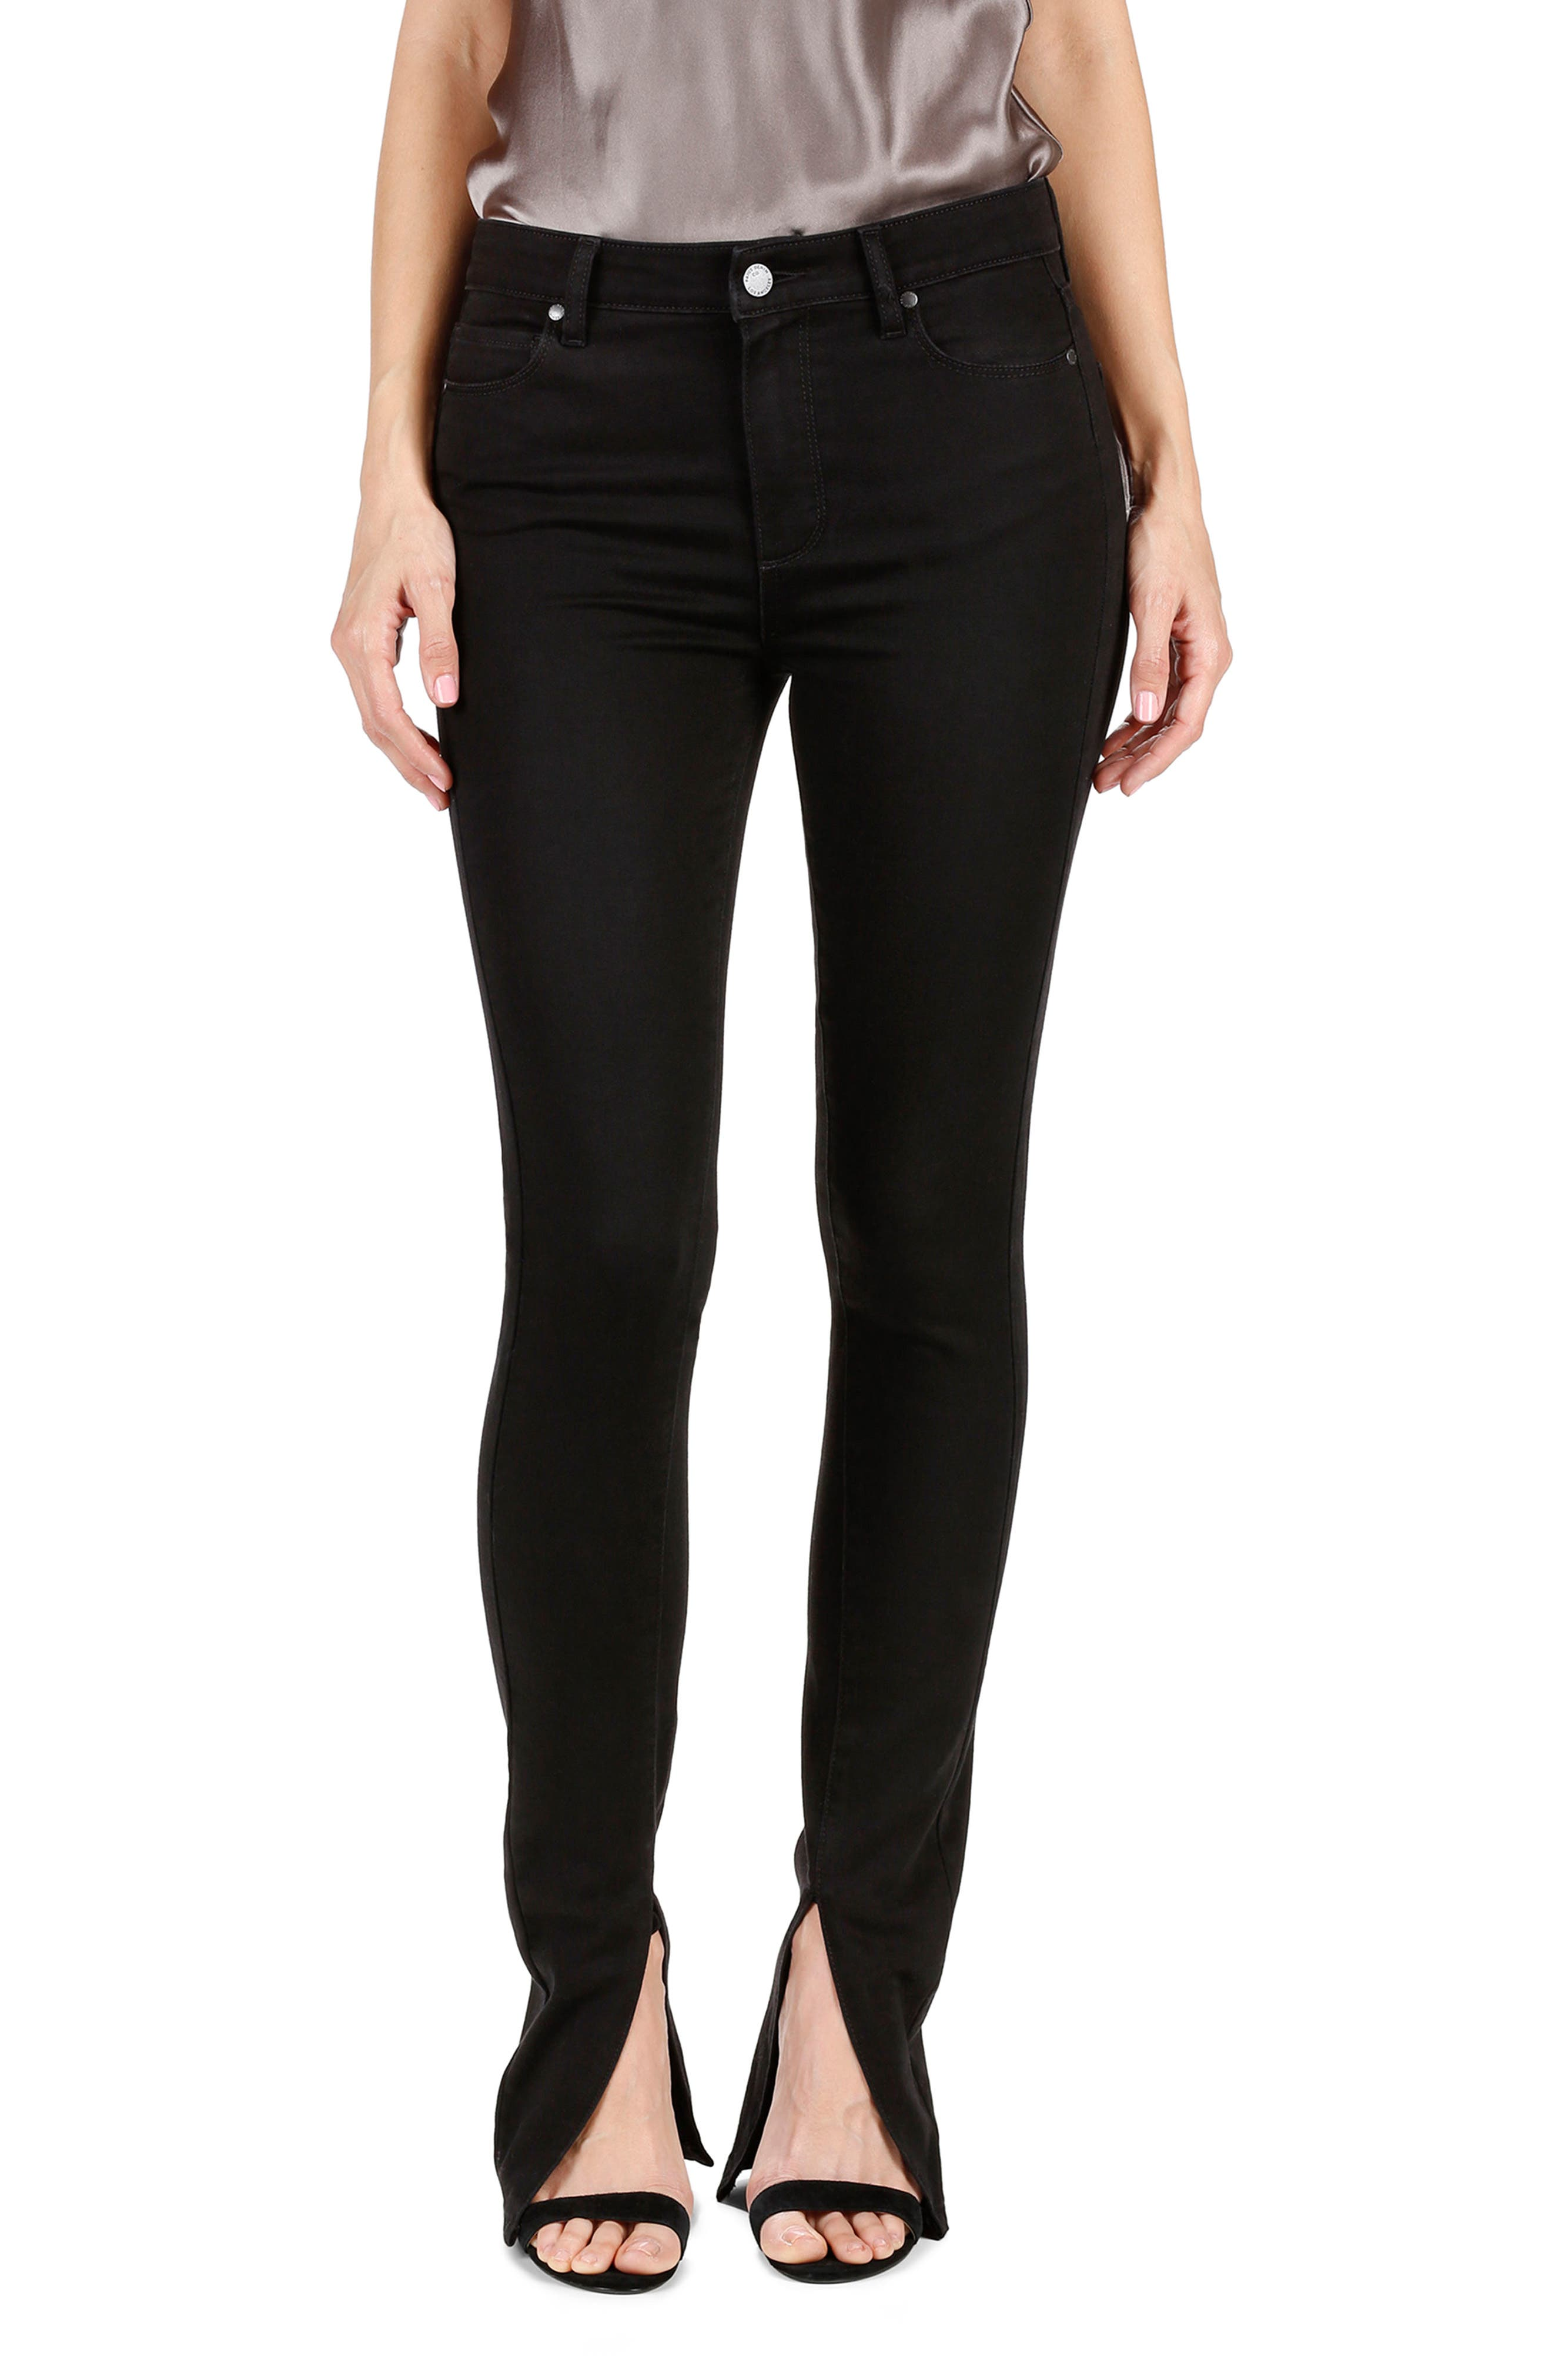 Rosie HW x PAIGE Constance Skinny Jeans,                             Main thumbnail 1, color,                             Onyx